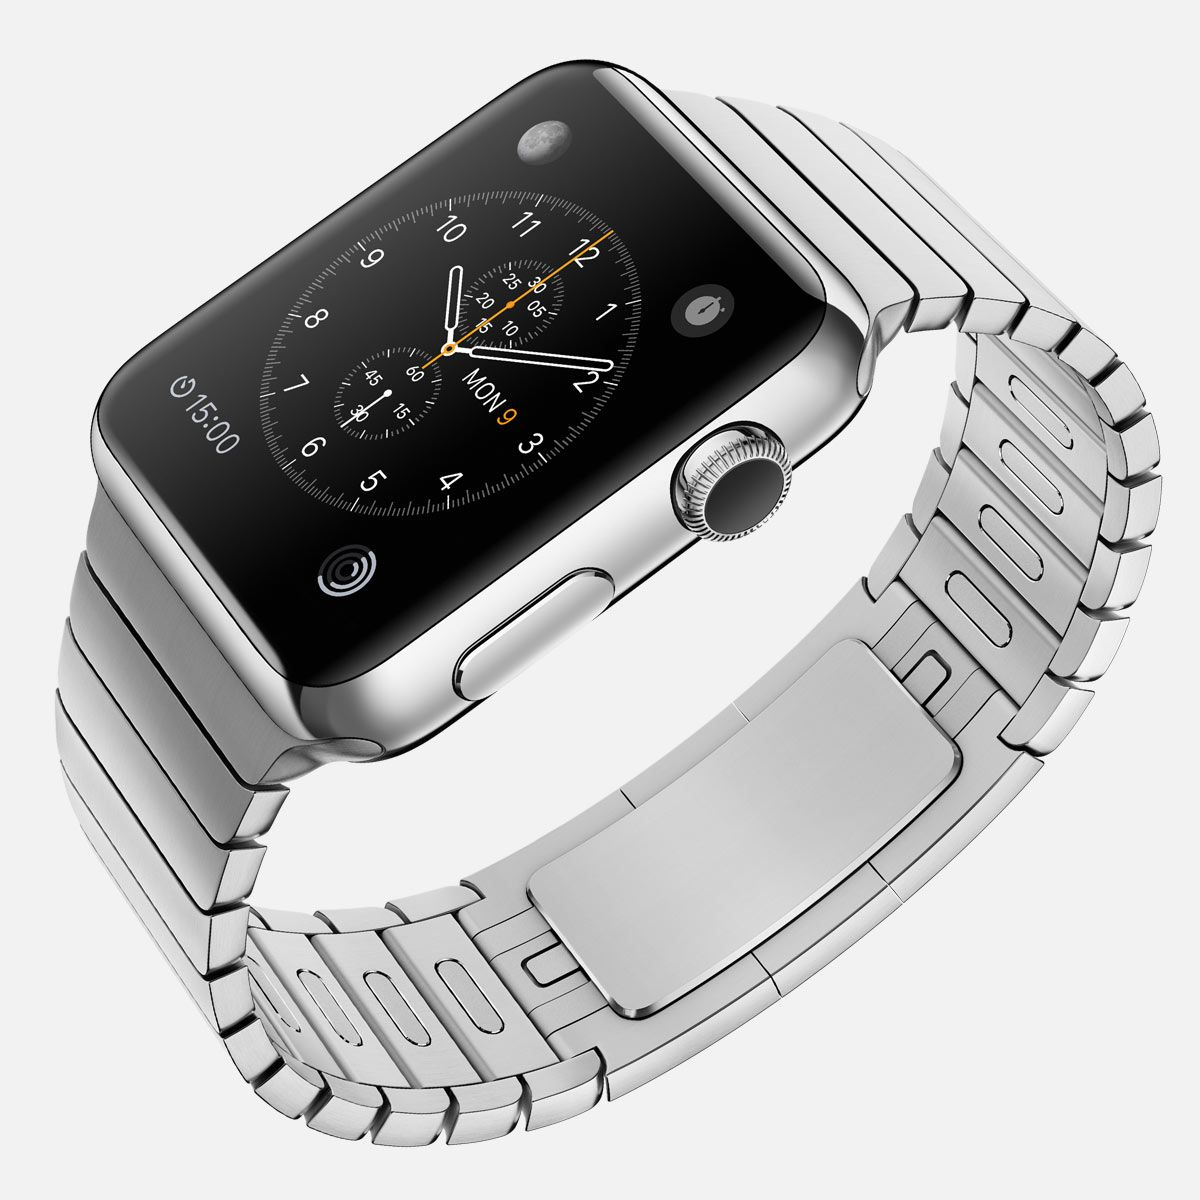 7 Ways The Apple Watch Will Benefit Travelers, And 2 Big